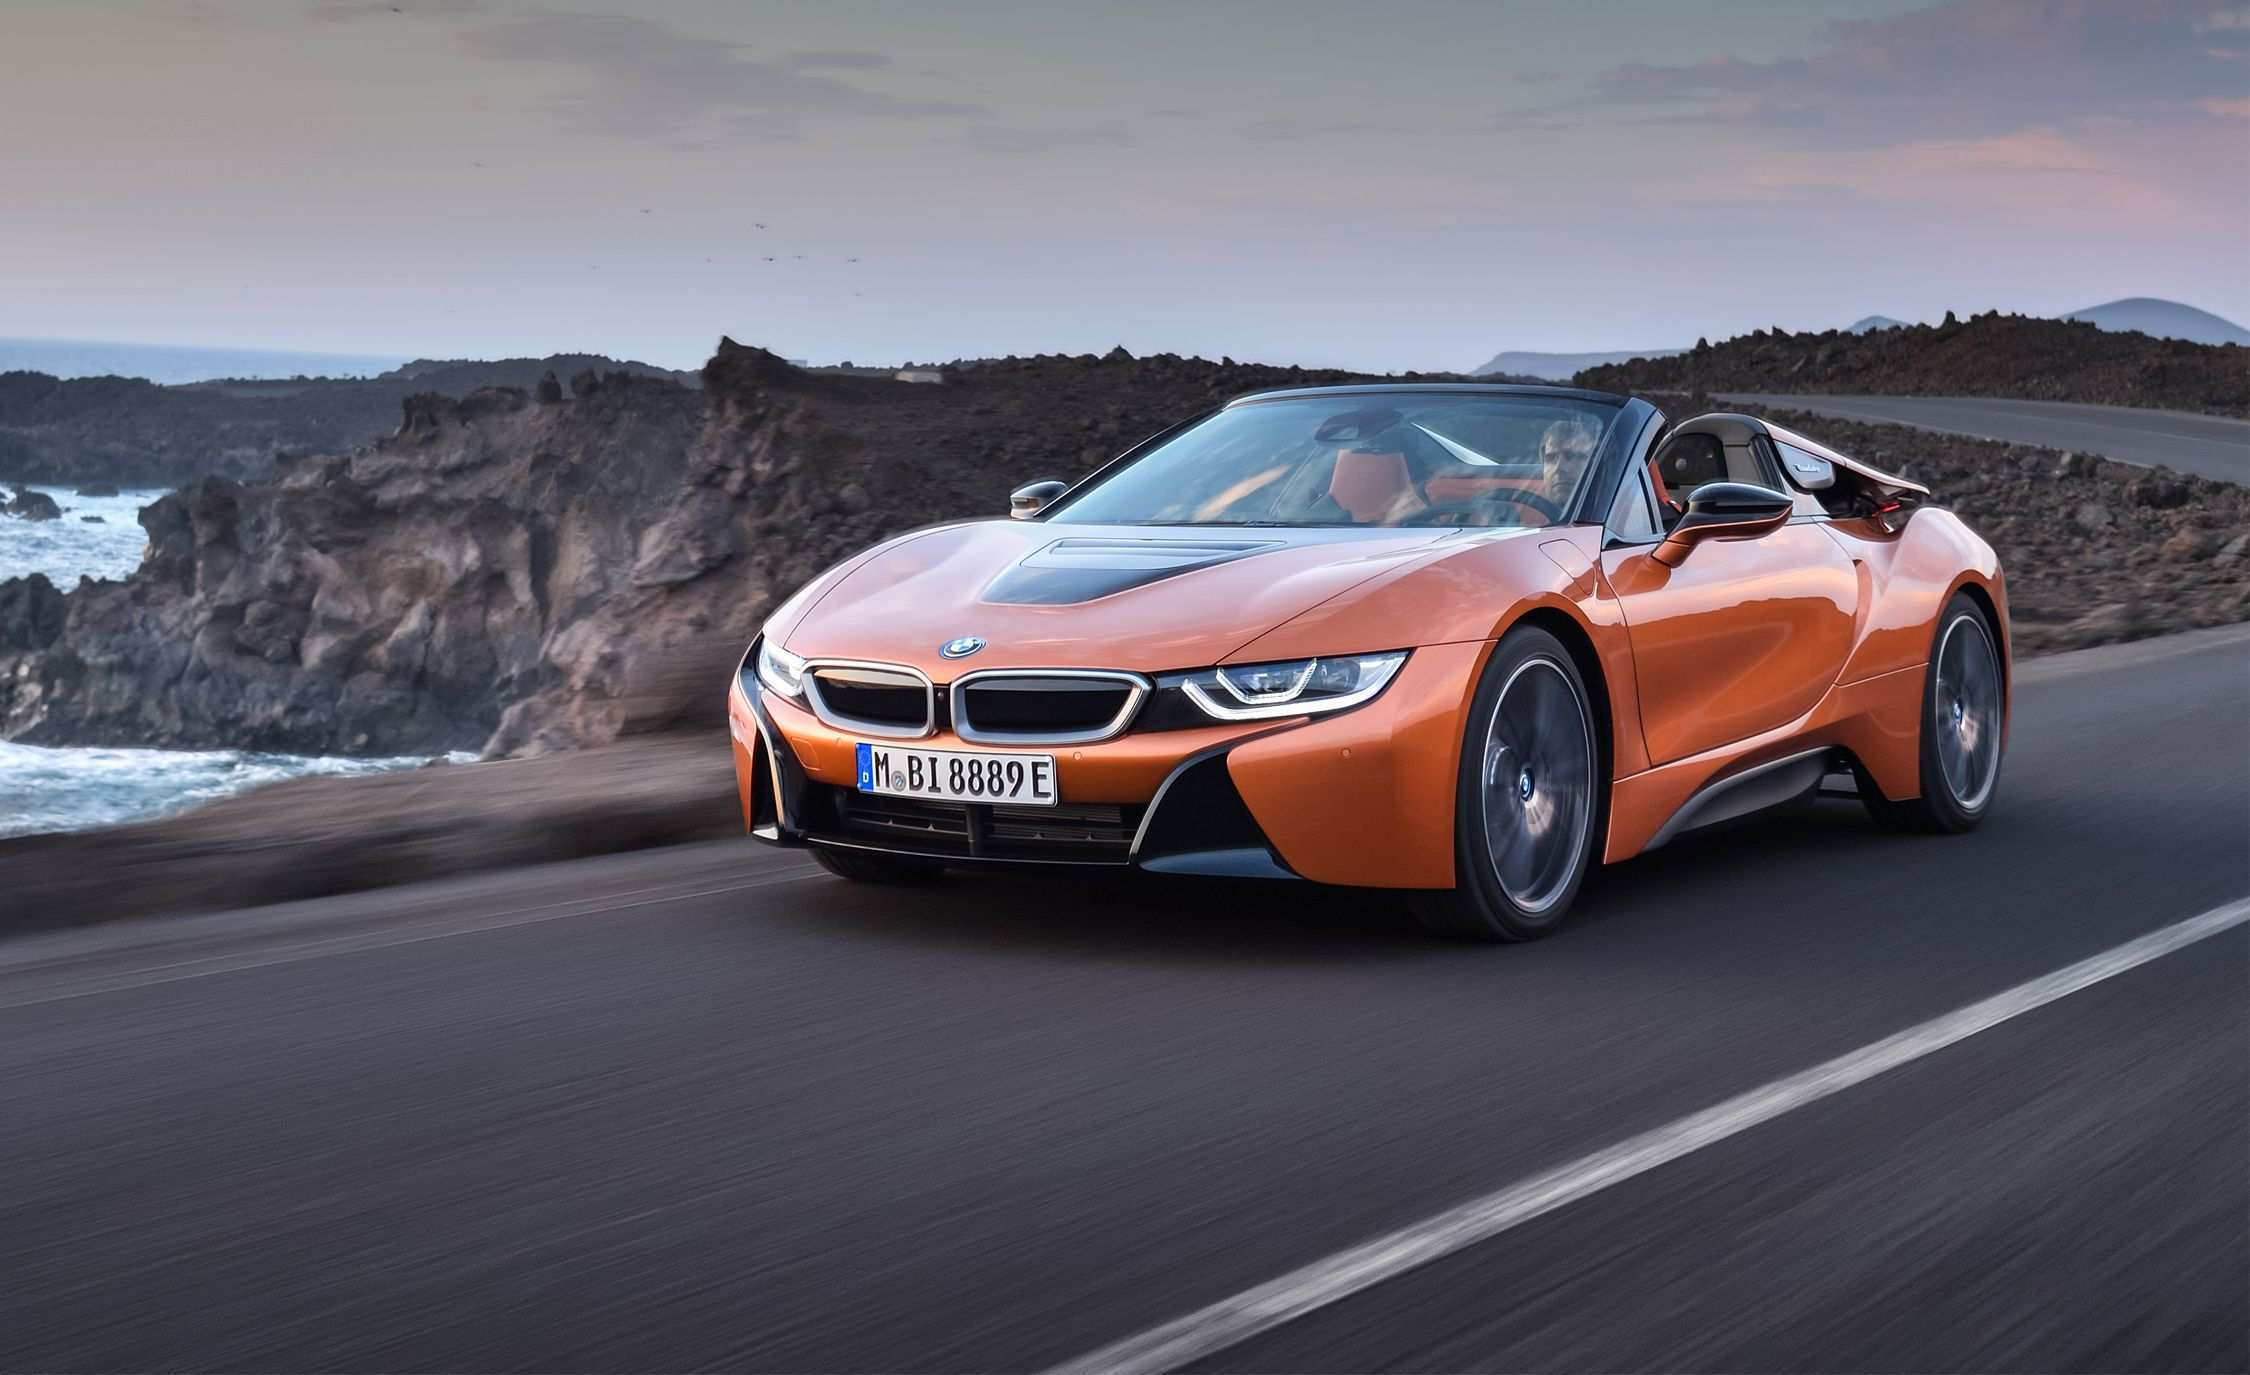 16 Best Review 2019 Bmw I8 Roadster Engine with 2019 Bmw I8 Roadster